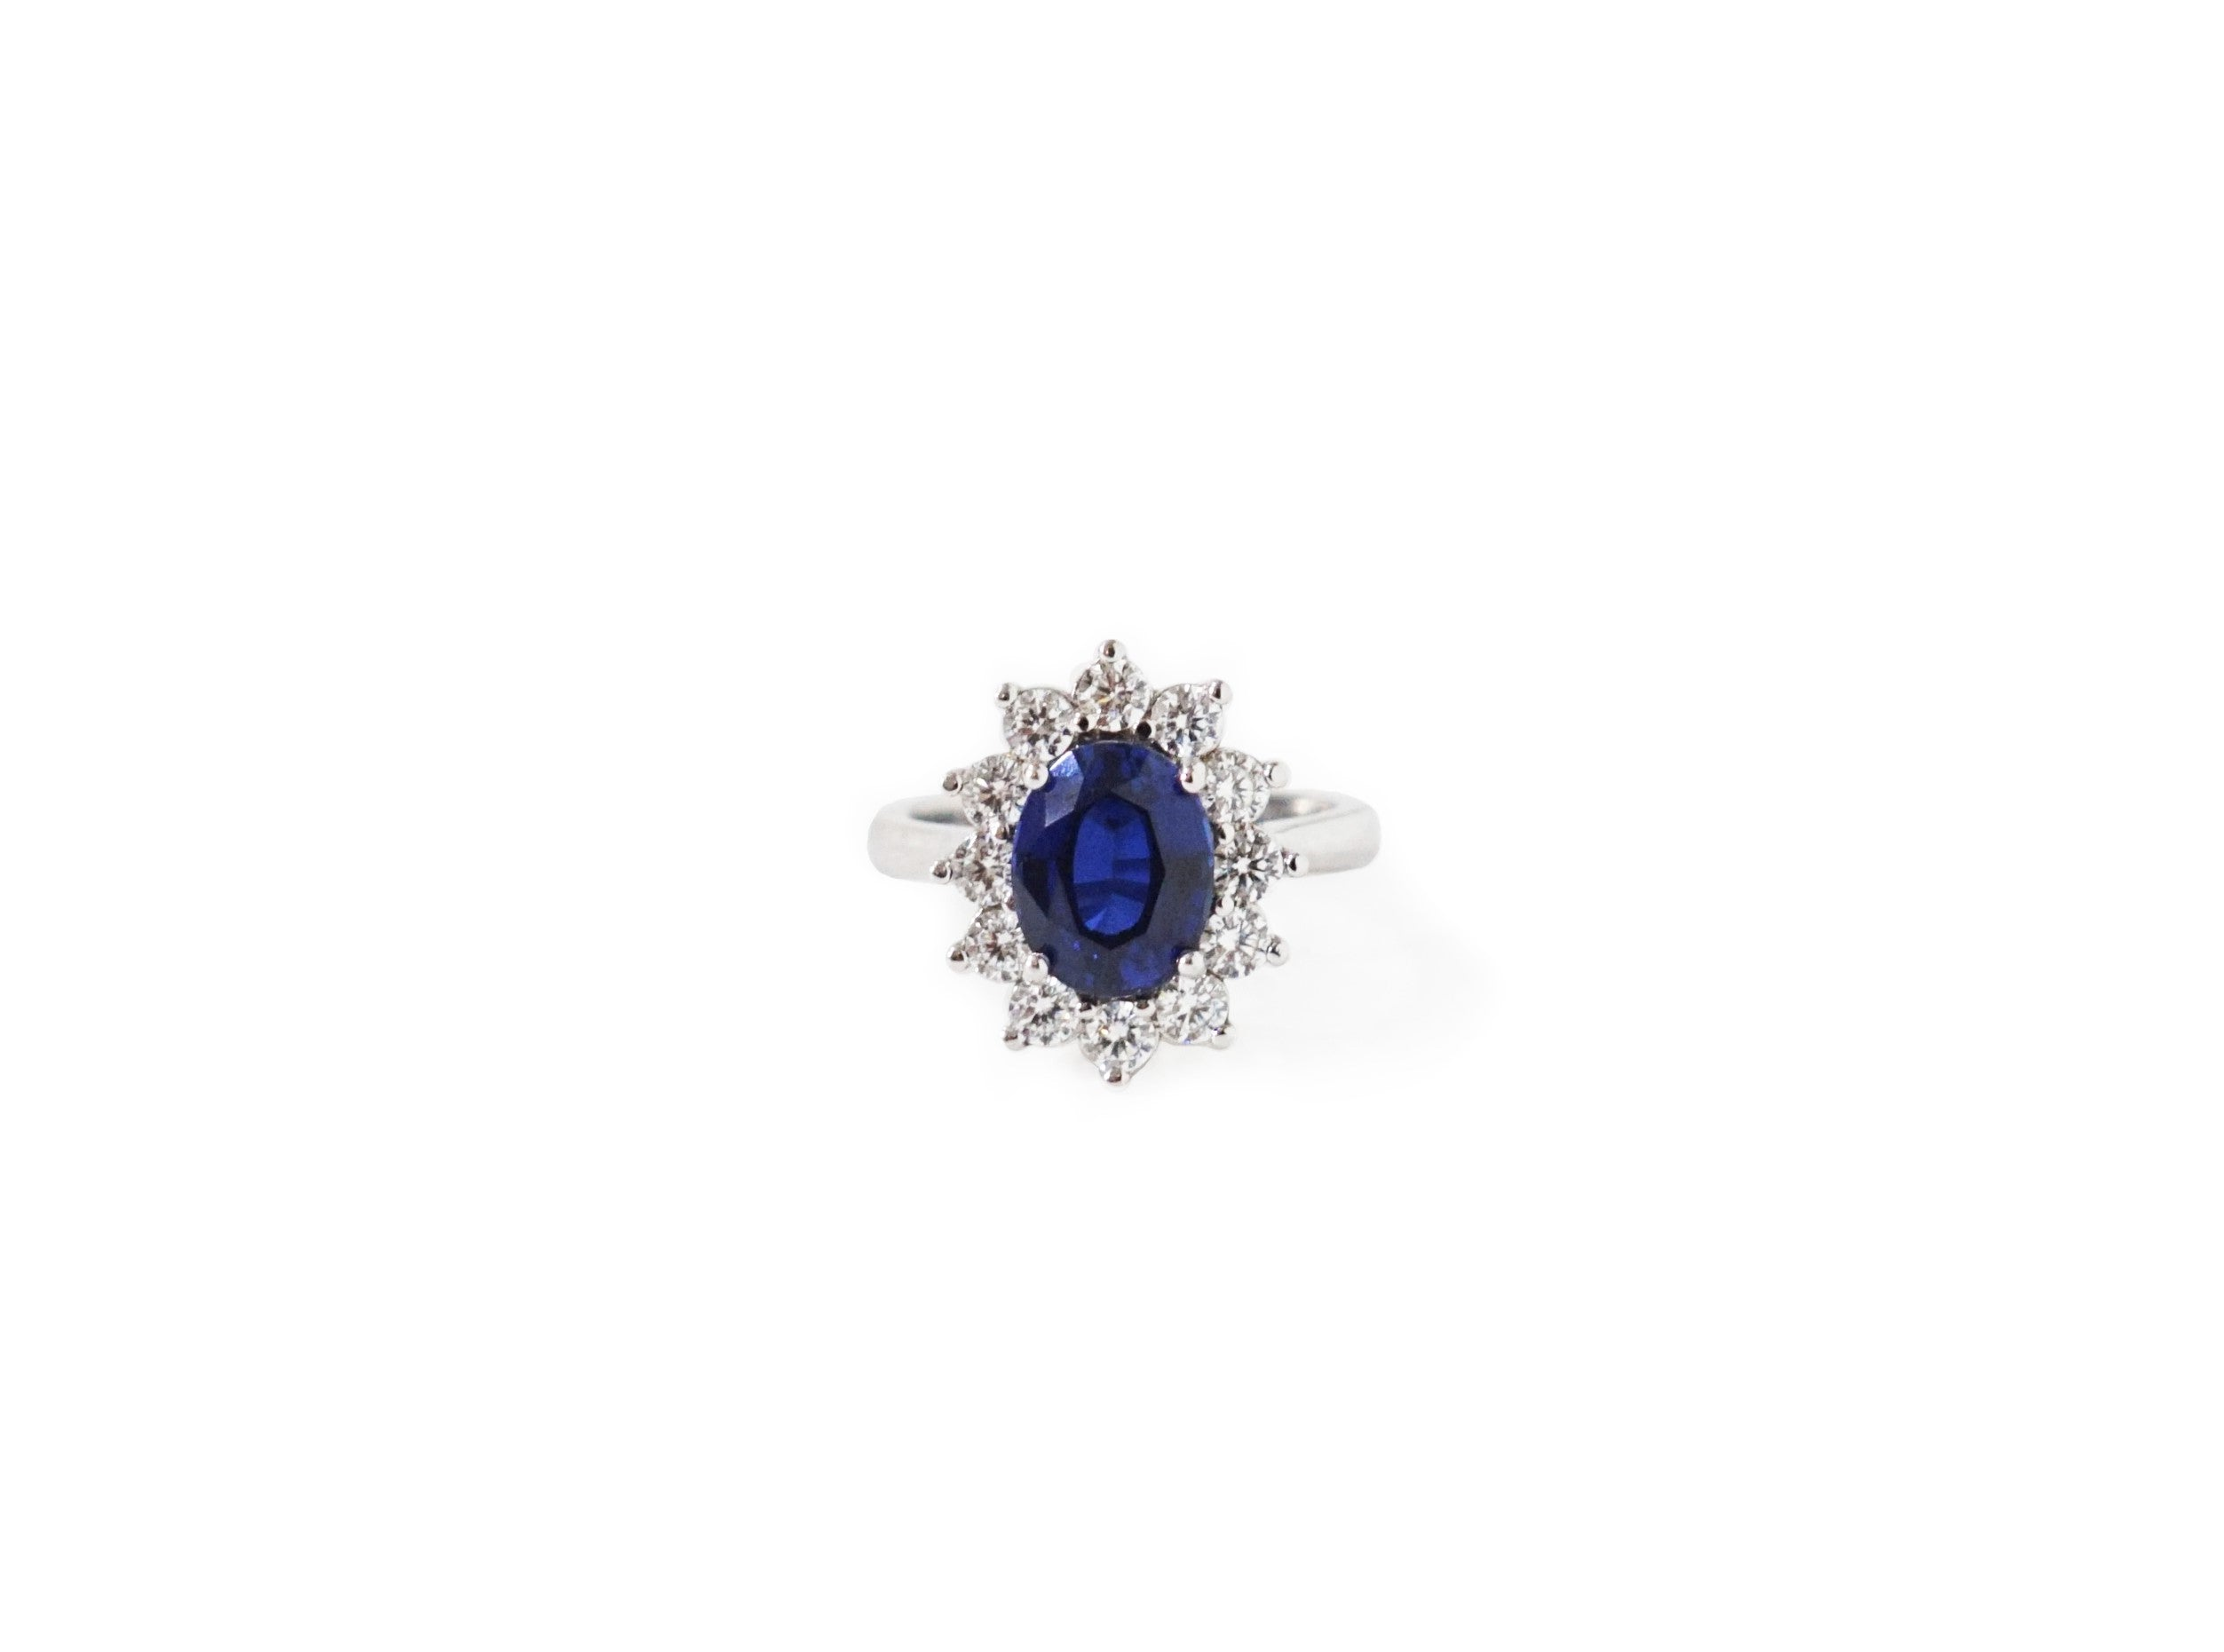 kt white certified gia diamond rings vivid blue ceylon jewellery gold g ring ii ct sapphire value engagement cushion natural cut appraisal